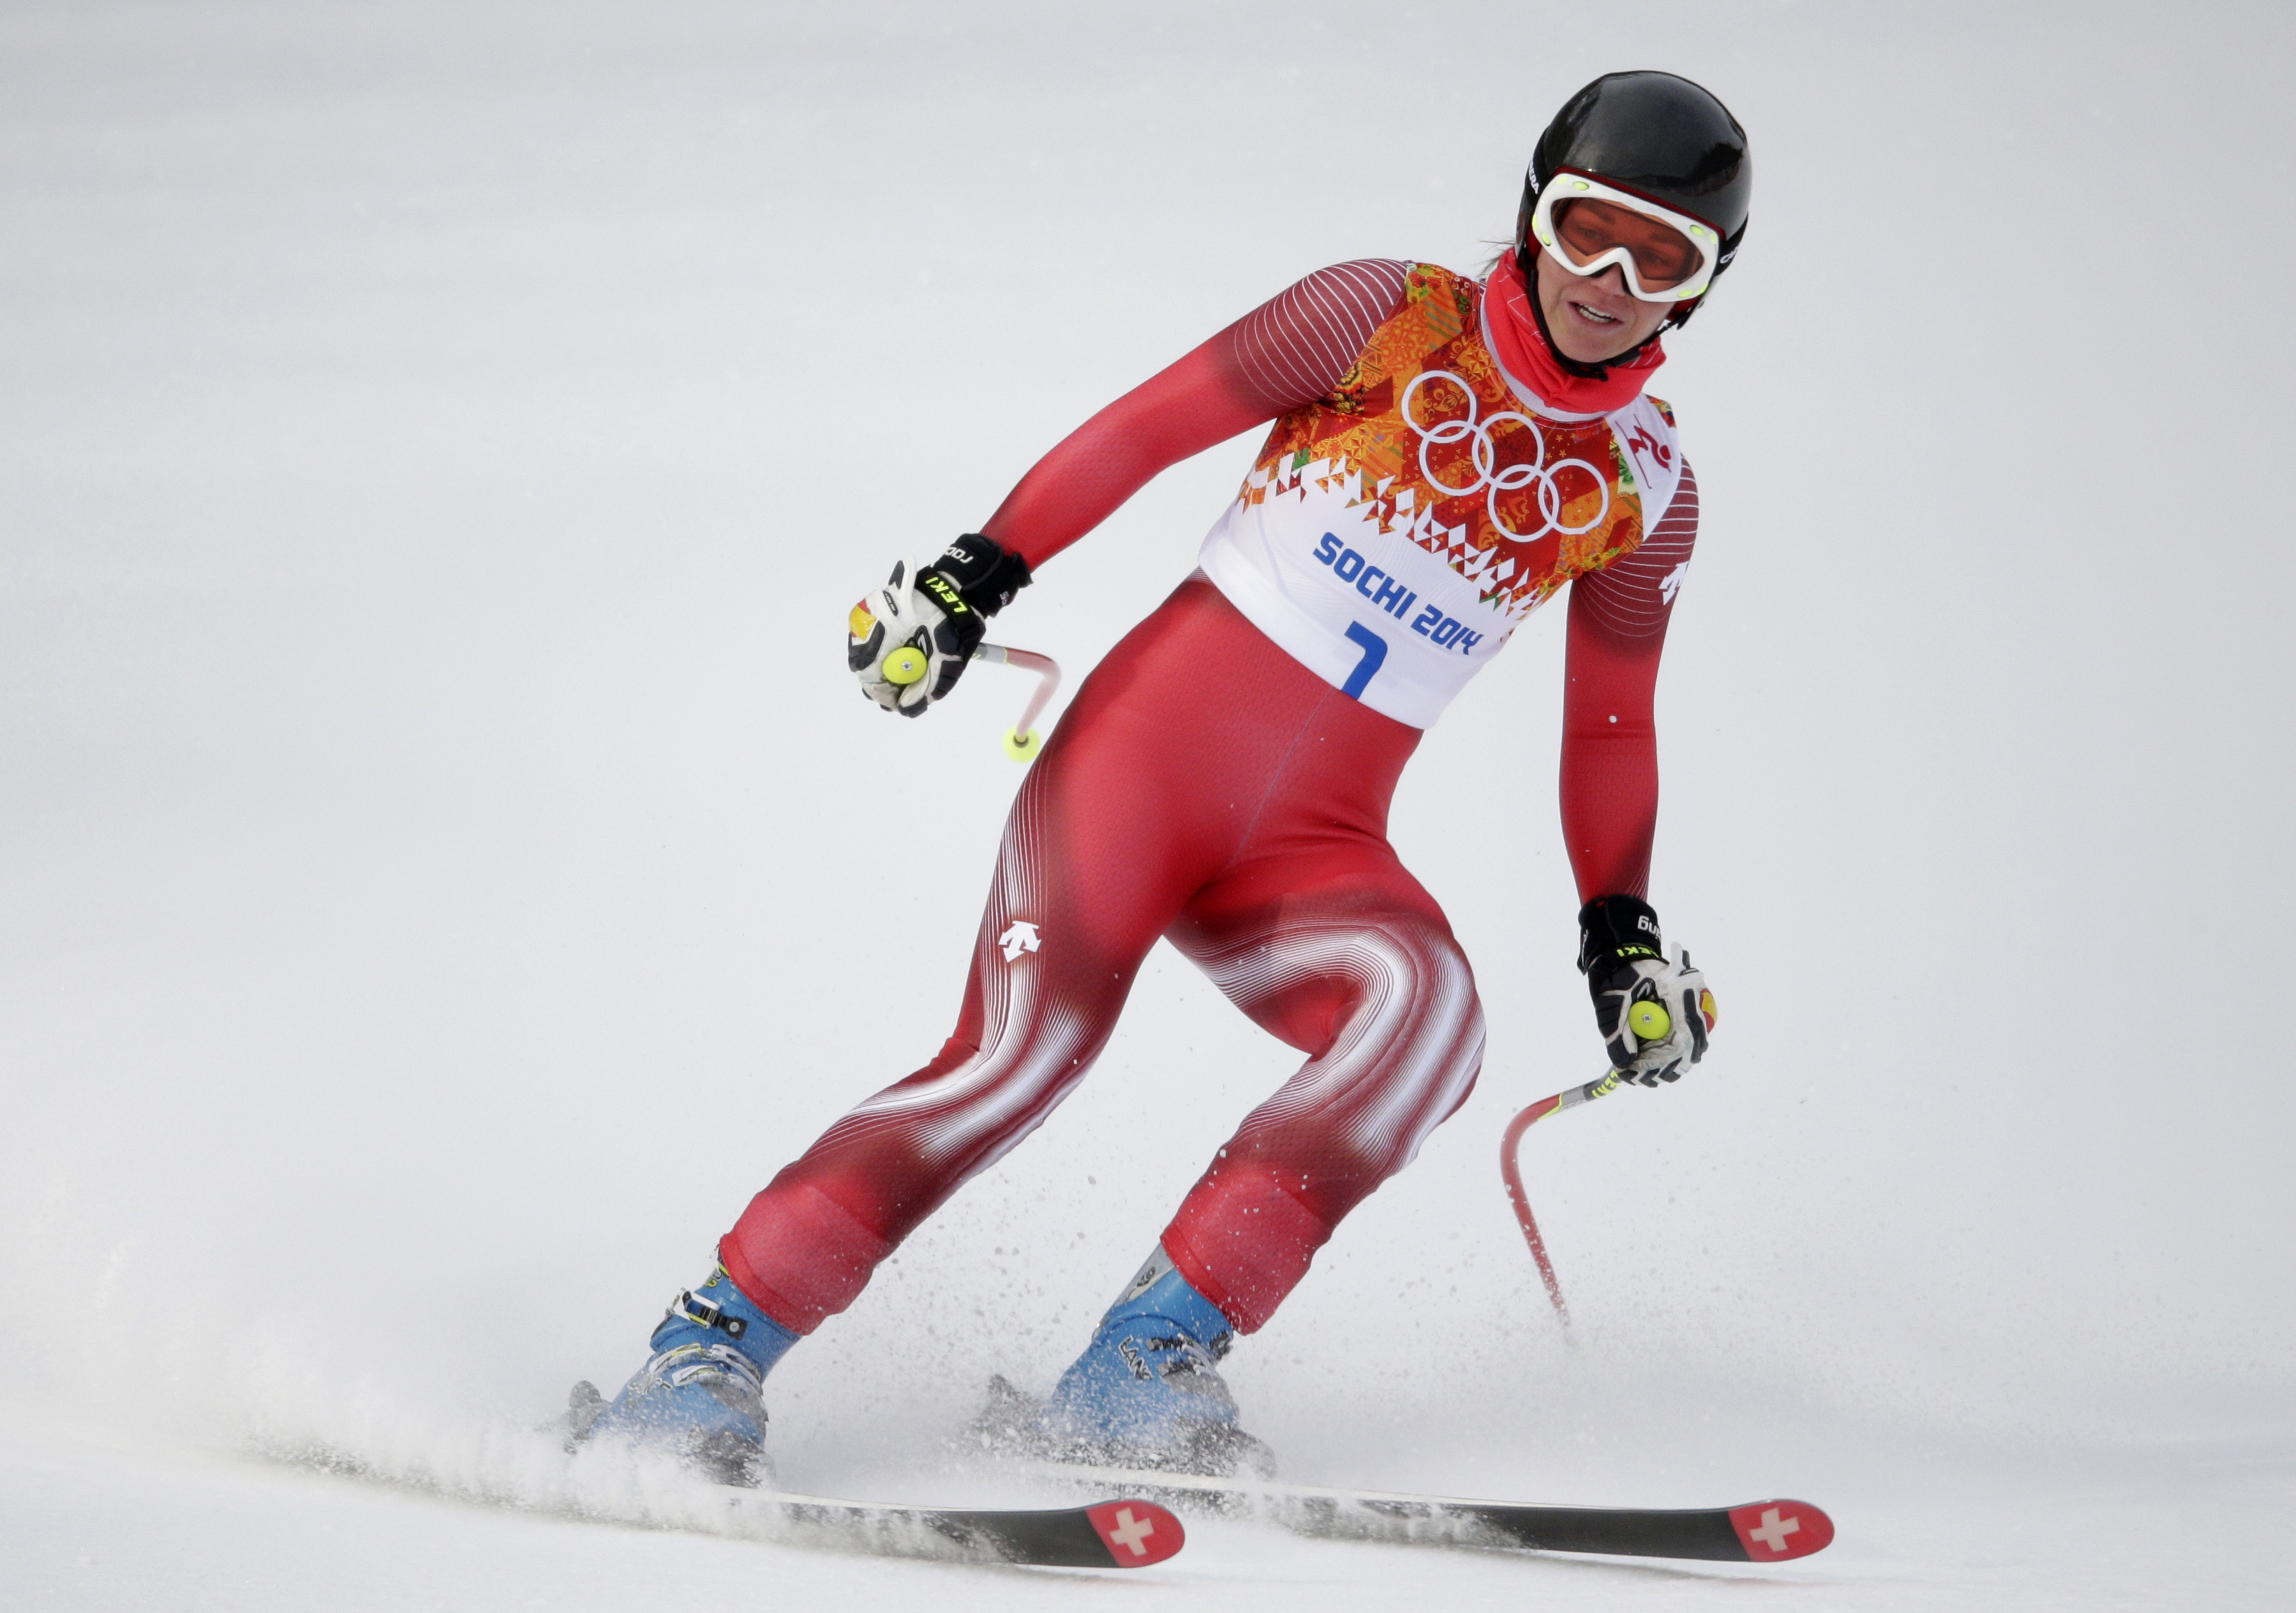 Switzerland's Fabienne Suter comes to a halt at the end of a women's downhill training run for the Sochi 2014 Winter Olympics, Sunday, Feb. 9, 2014, in Krasnaya Polyana, Russia. (AP Photo/Jae C. Hong)